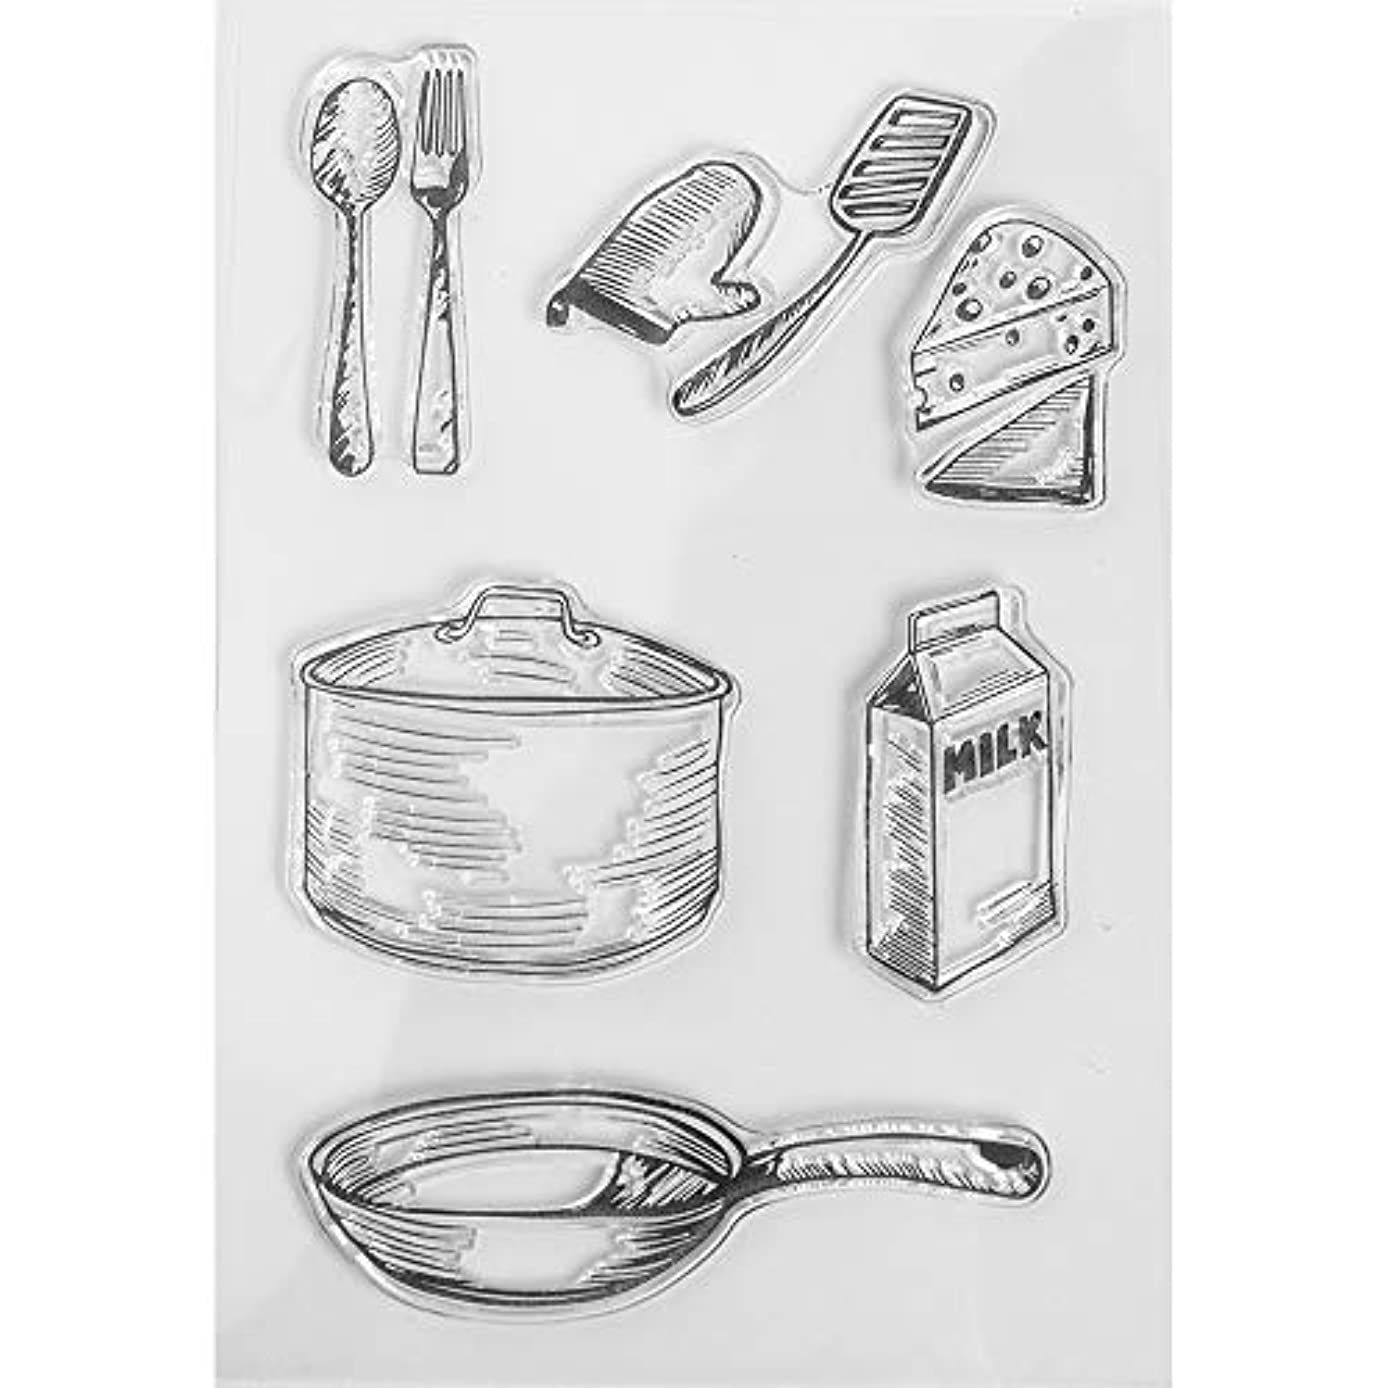 MaGuo Tableware Clear Stamps Pan, Knife Fork Paper Craft Projects and DIY Scrapbooking